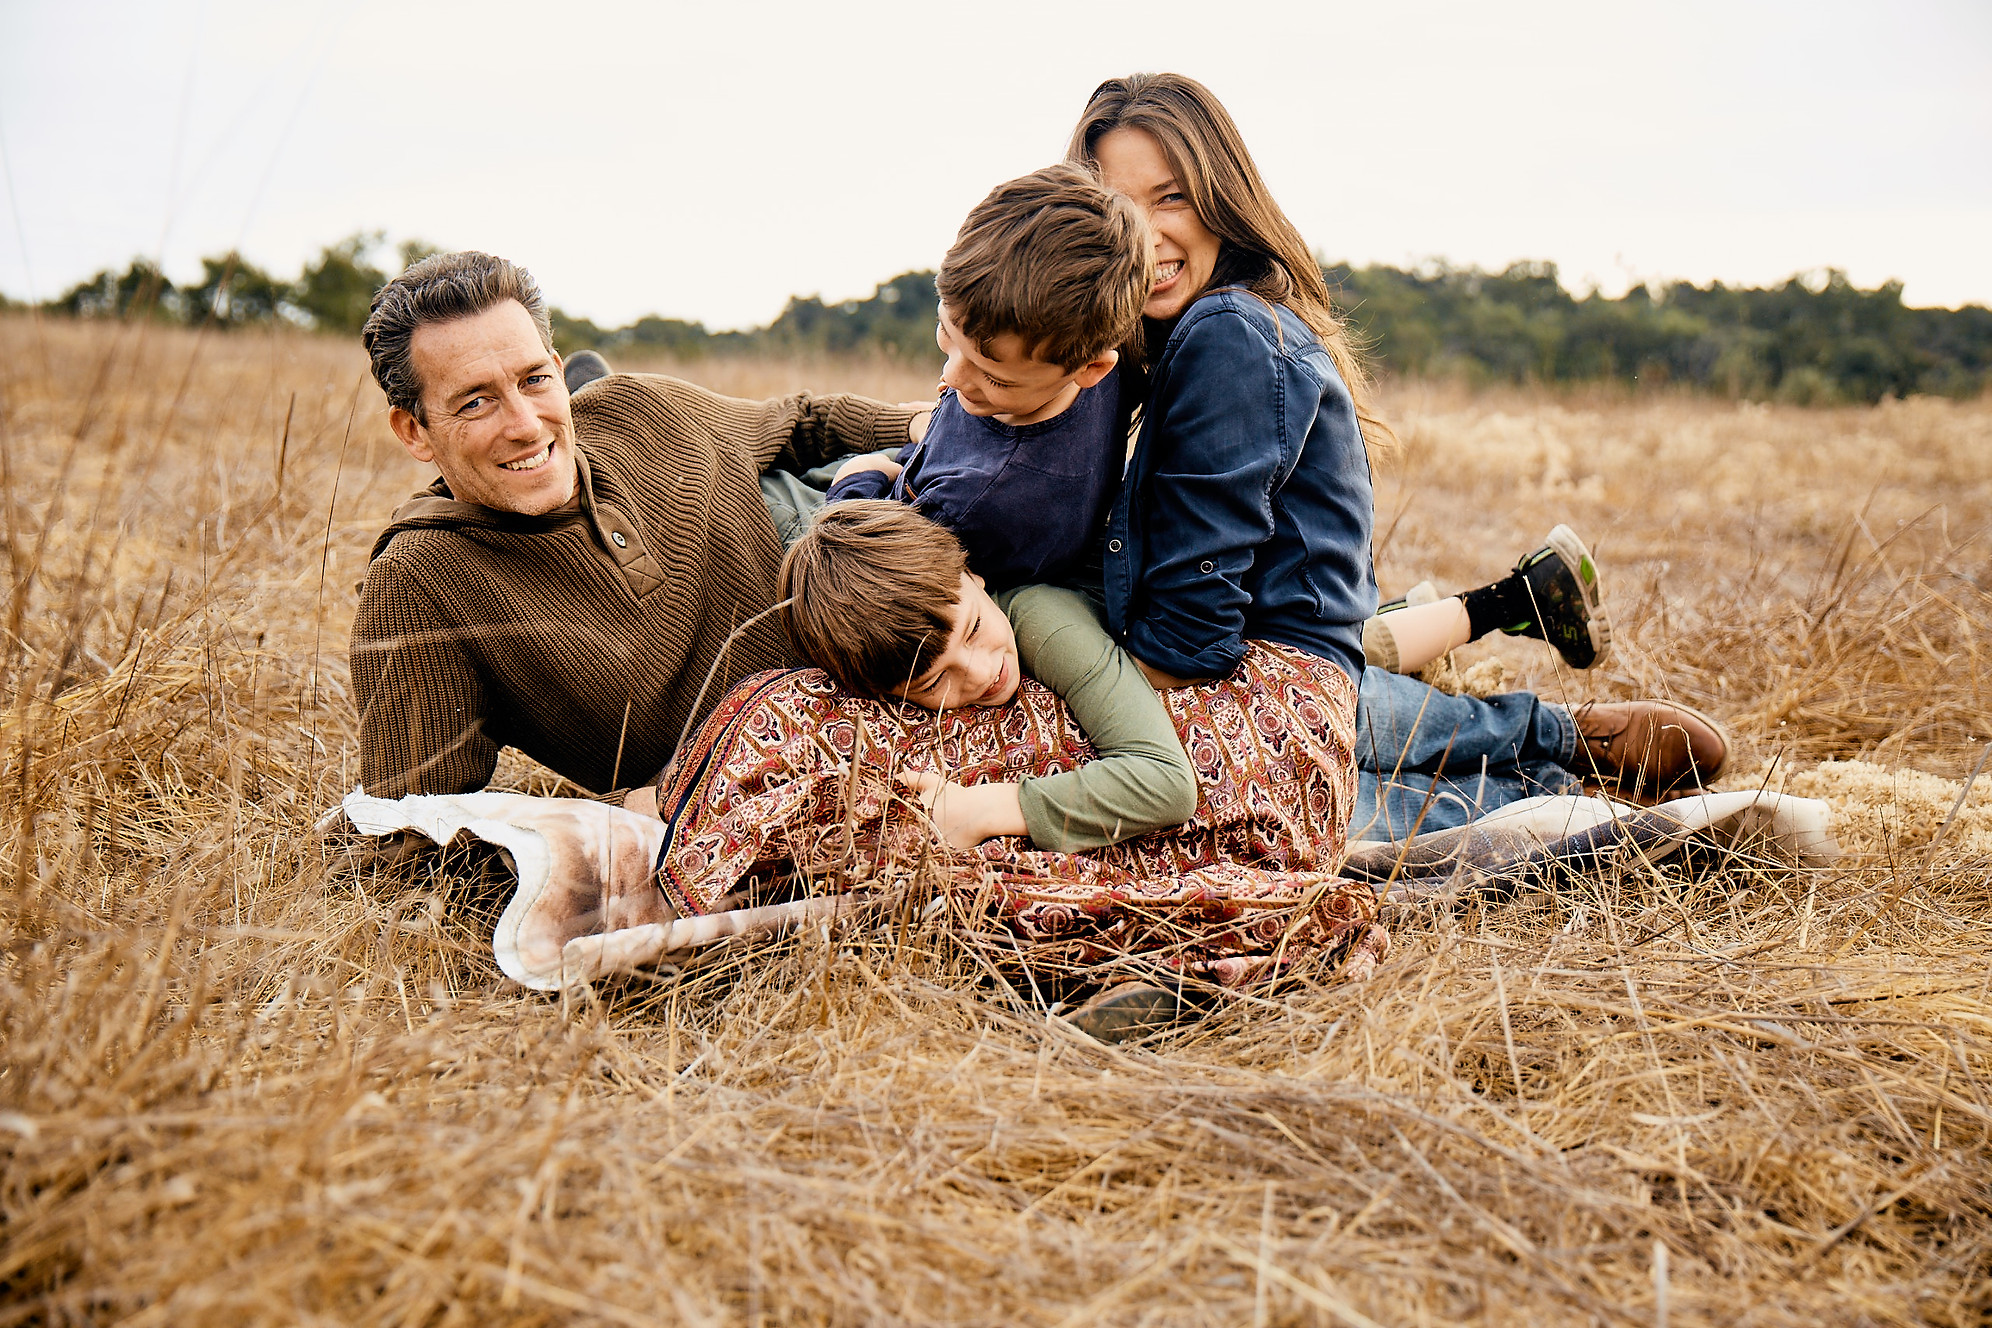 Lifestyle Family Portrait | Family playing in the high grass of Los Angeles |  Family Photographer | Los Angeles | Story Telling | Family Photoshoot